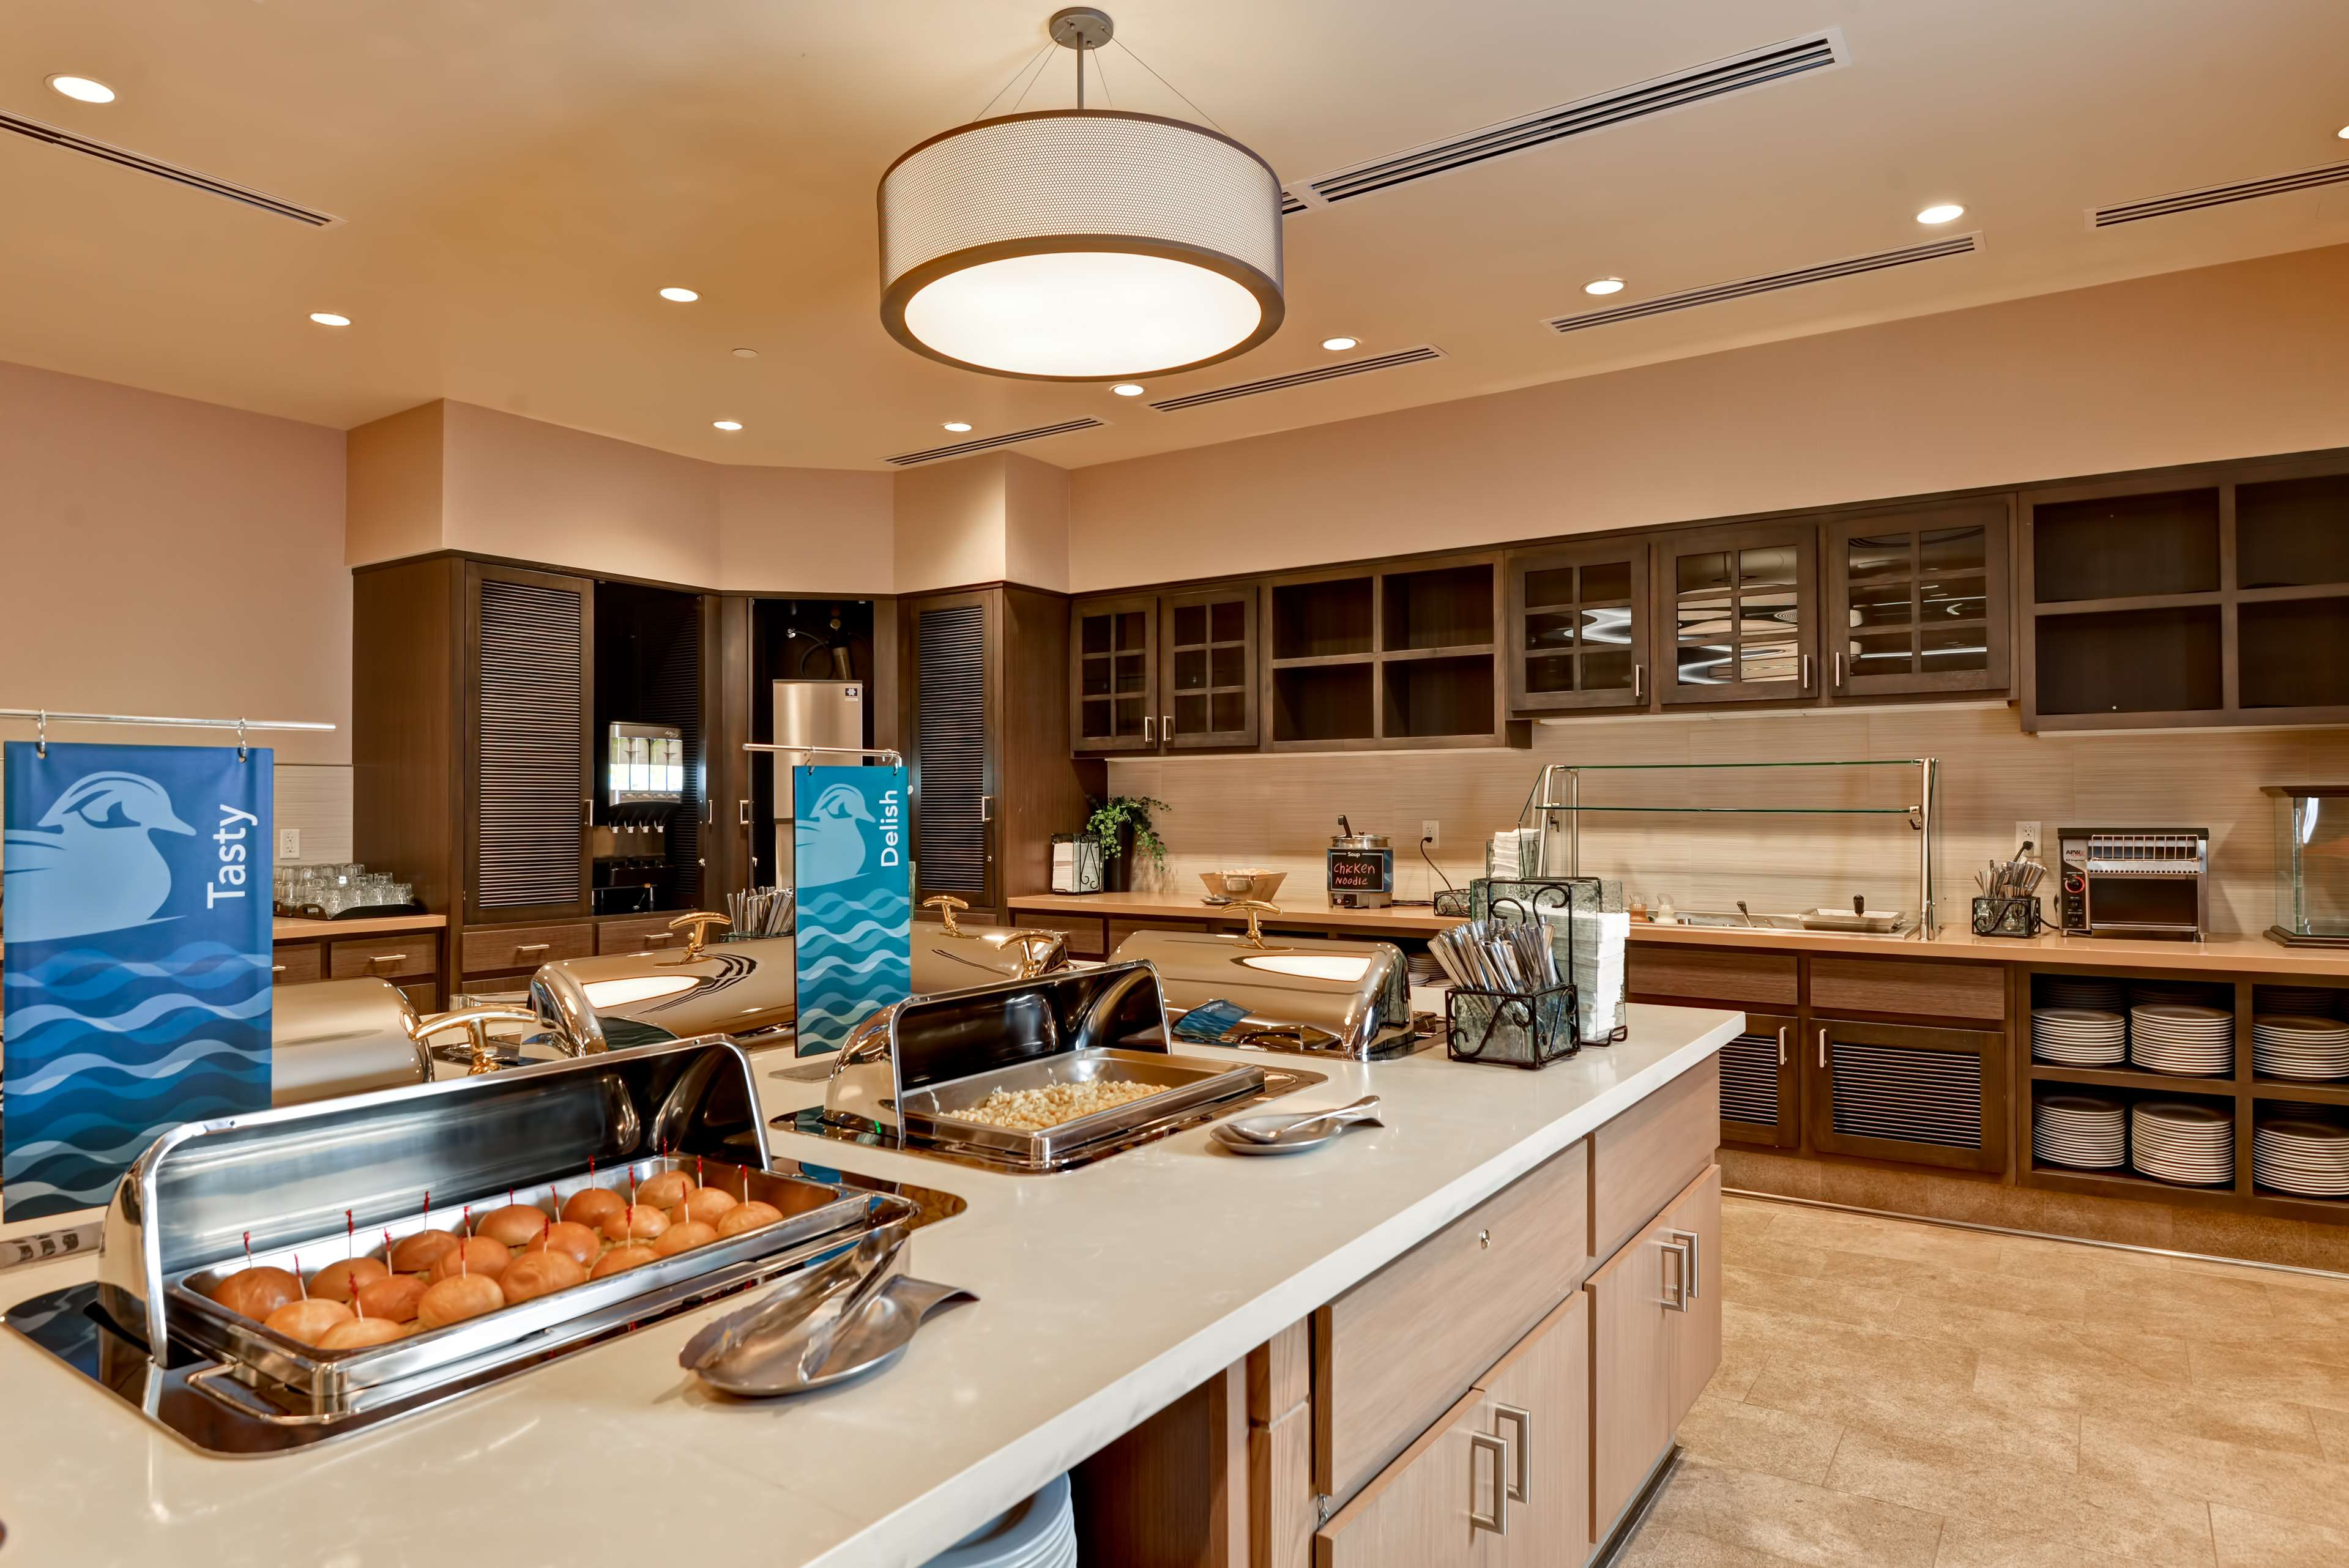 Homewood Suites by Hilton Anaheim Resort - Convention Center image 9